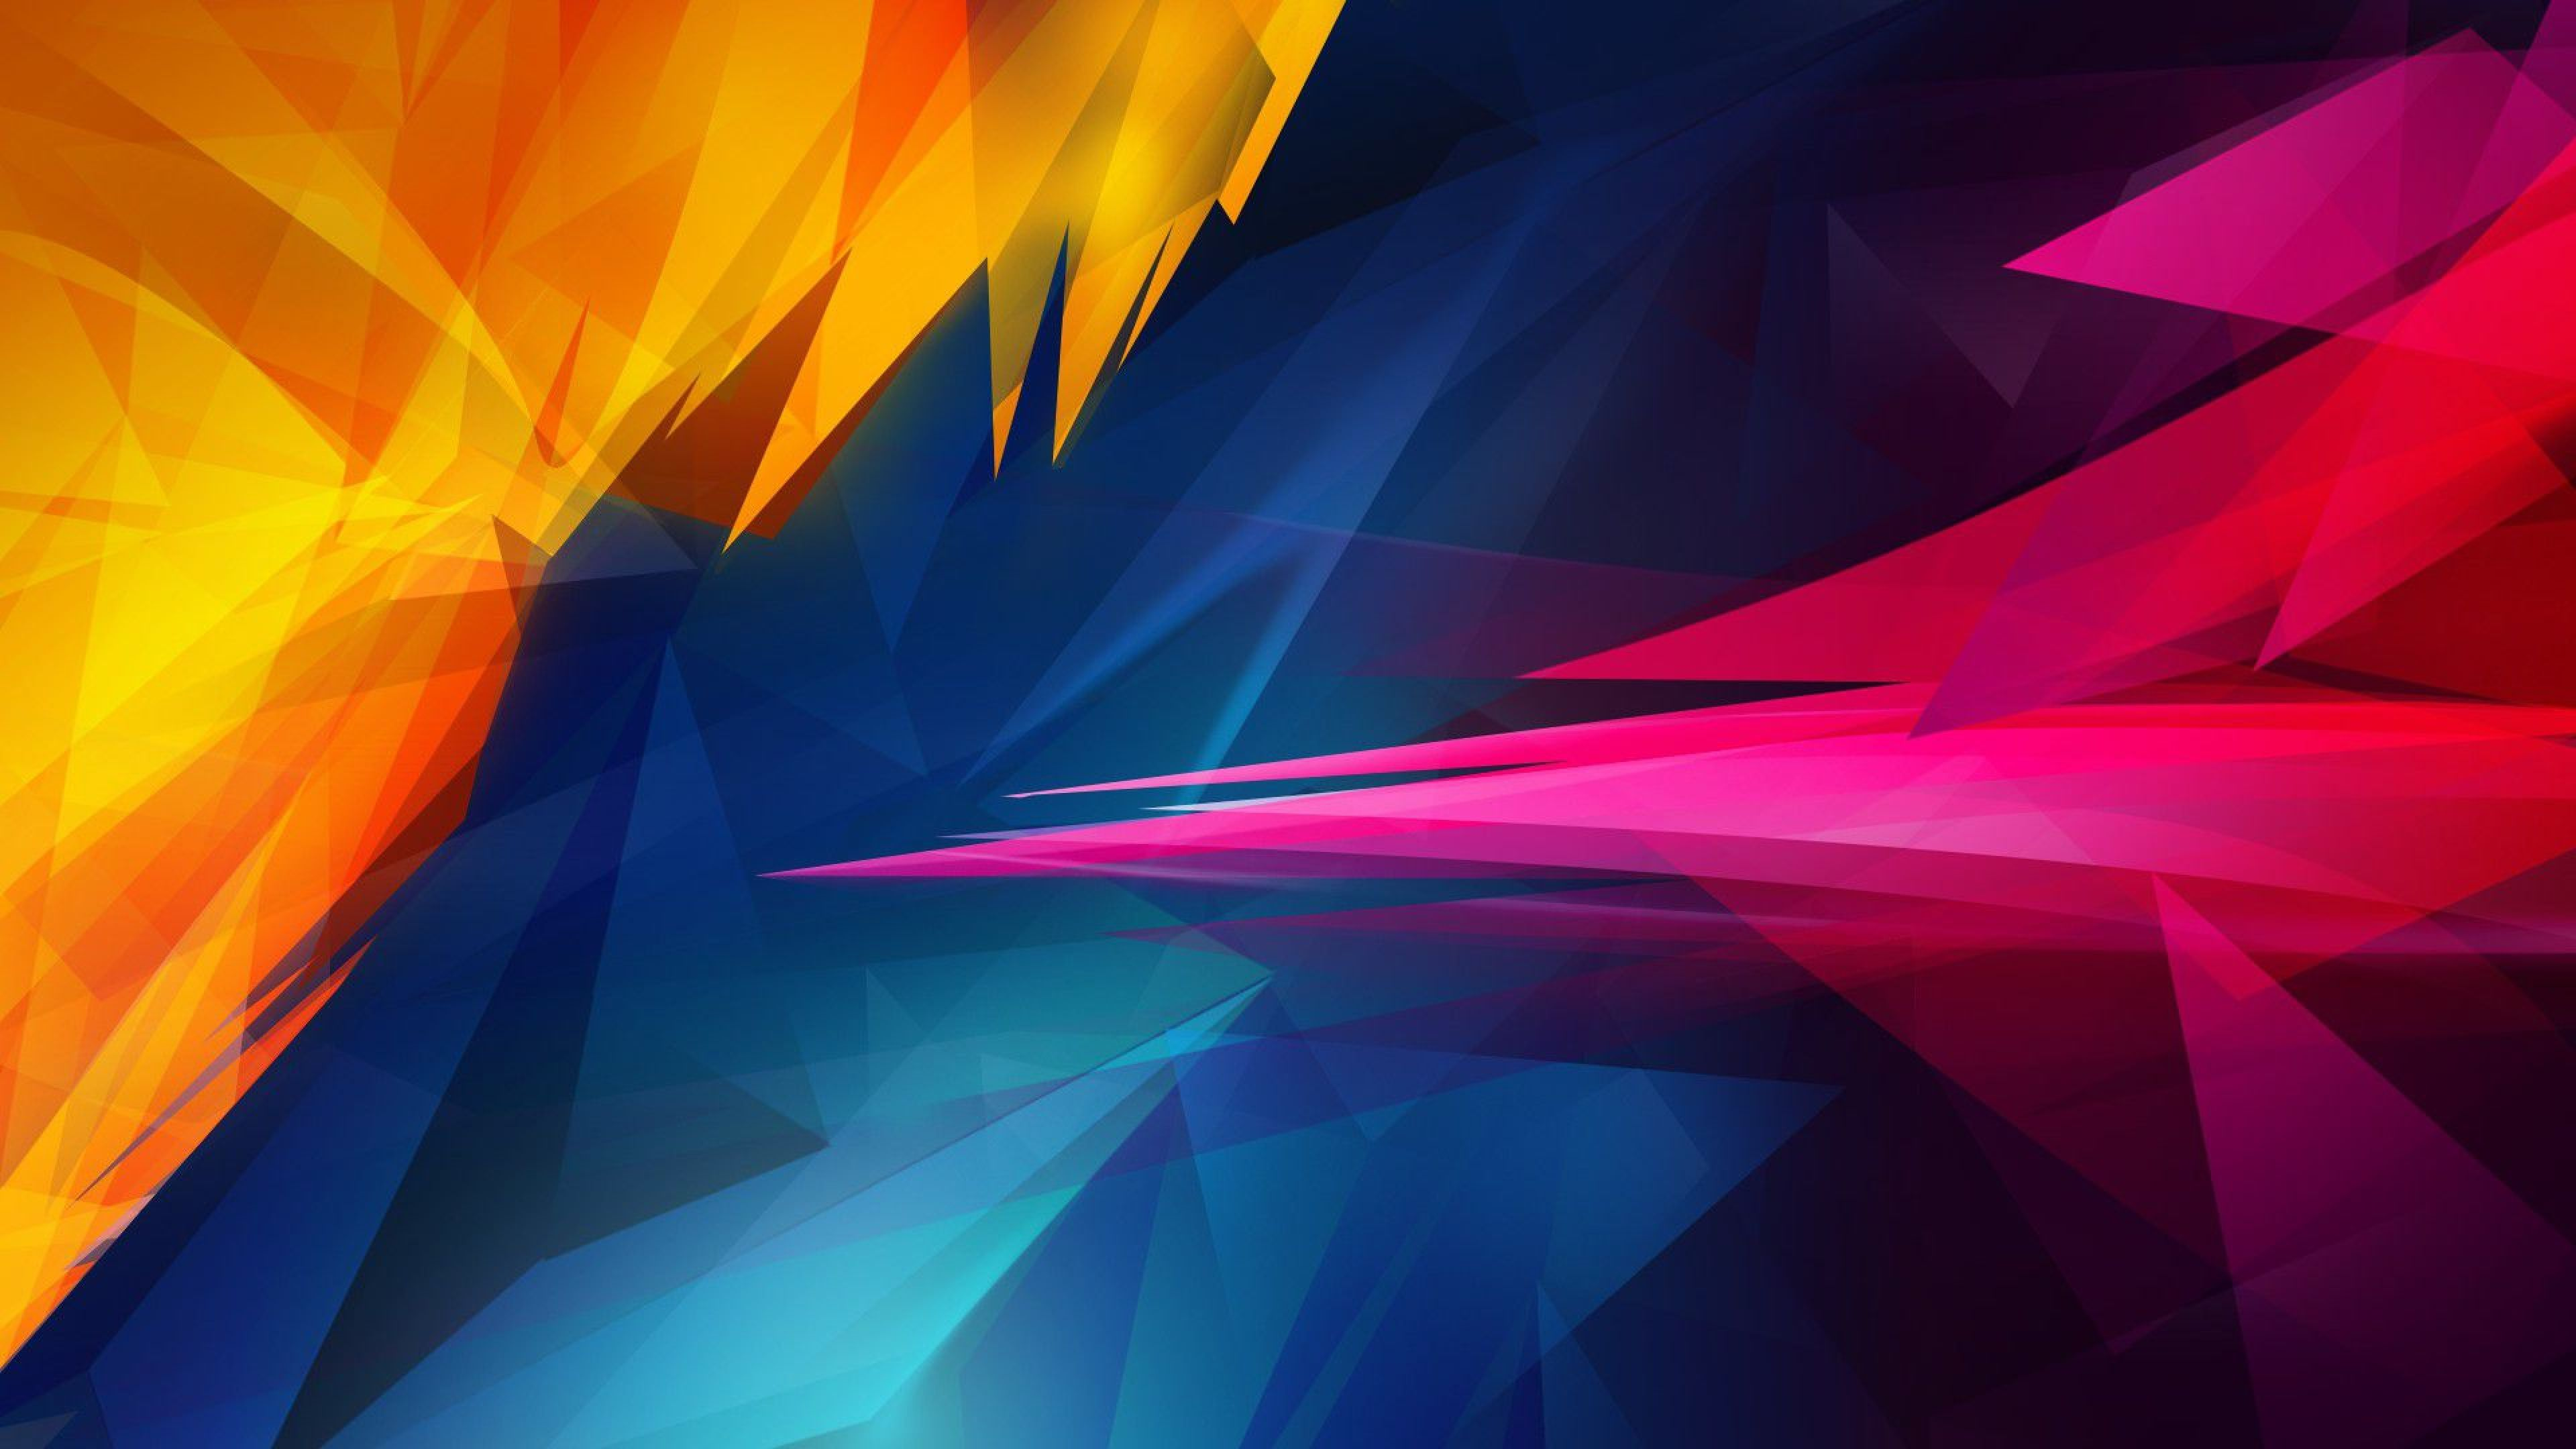 Uhd Abstract Wallpapers Top Free Uhd Abstract Backgrounds Wallpaperaccess